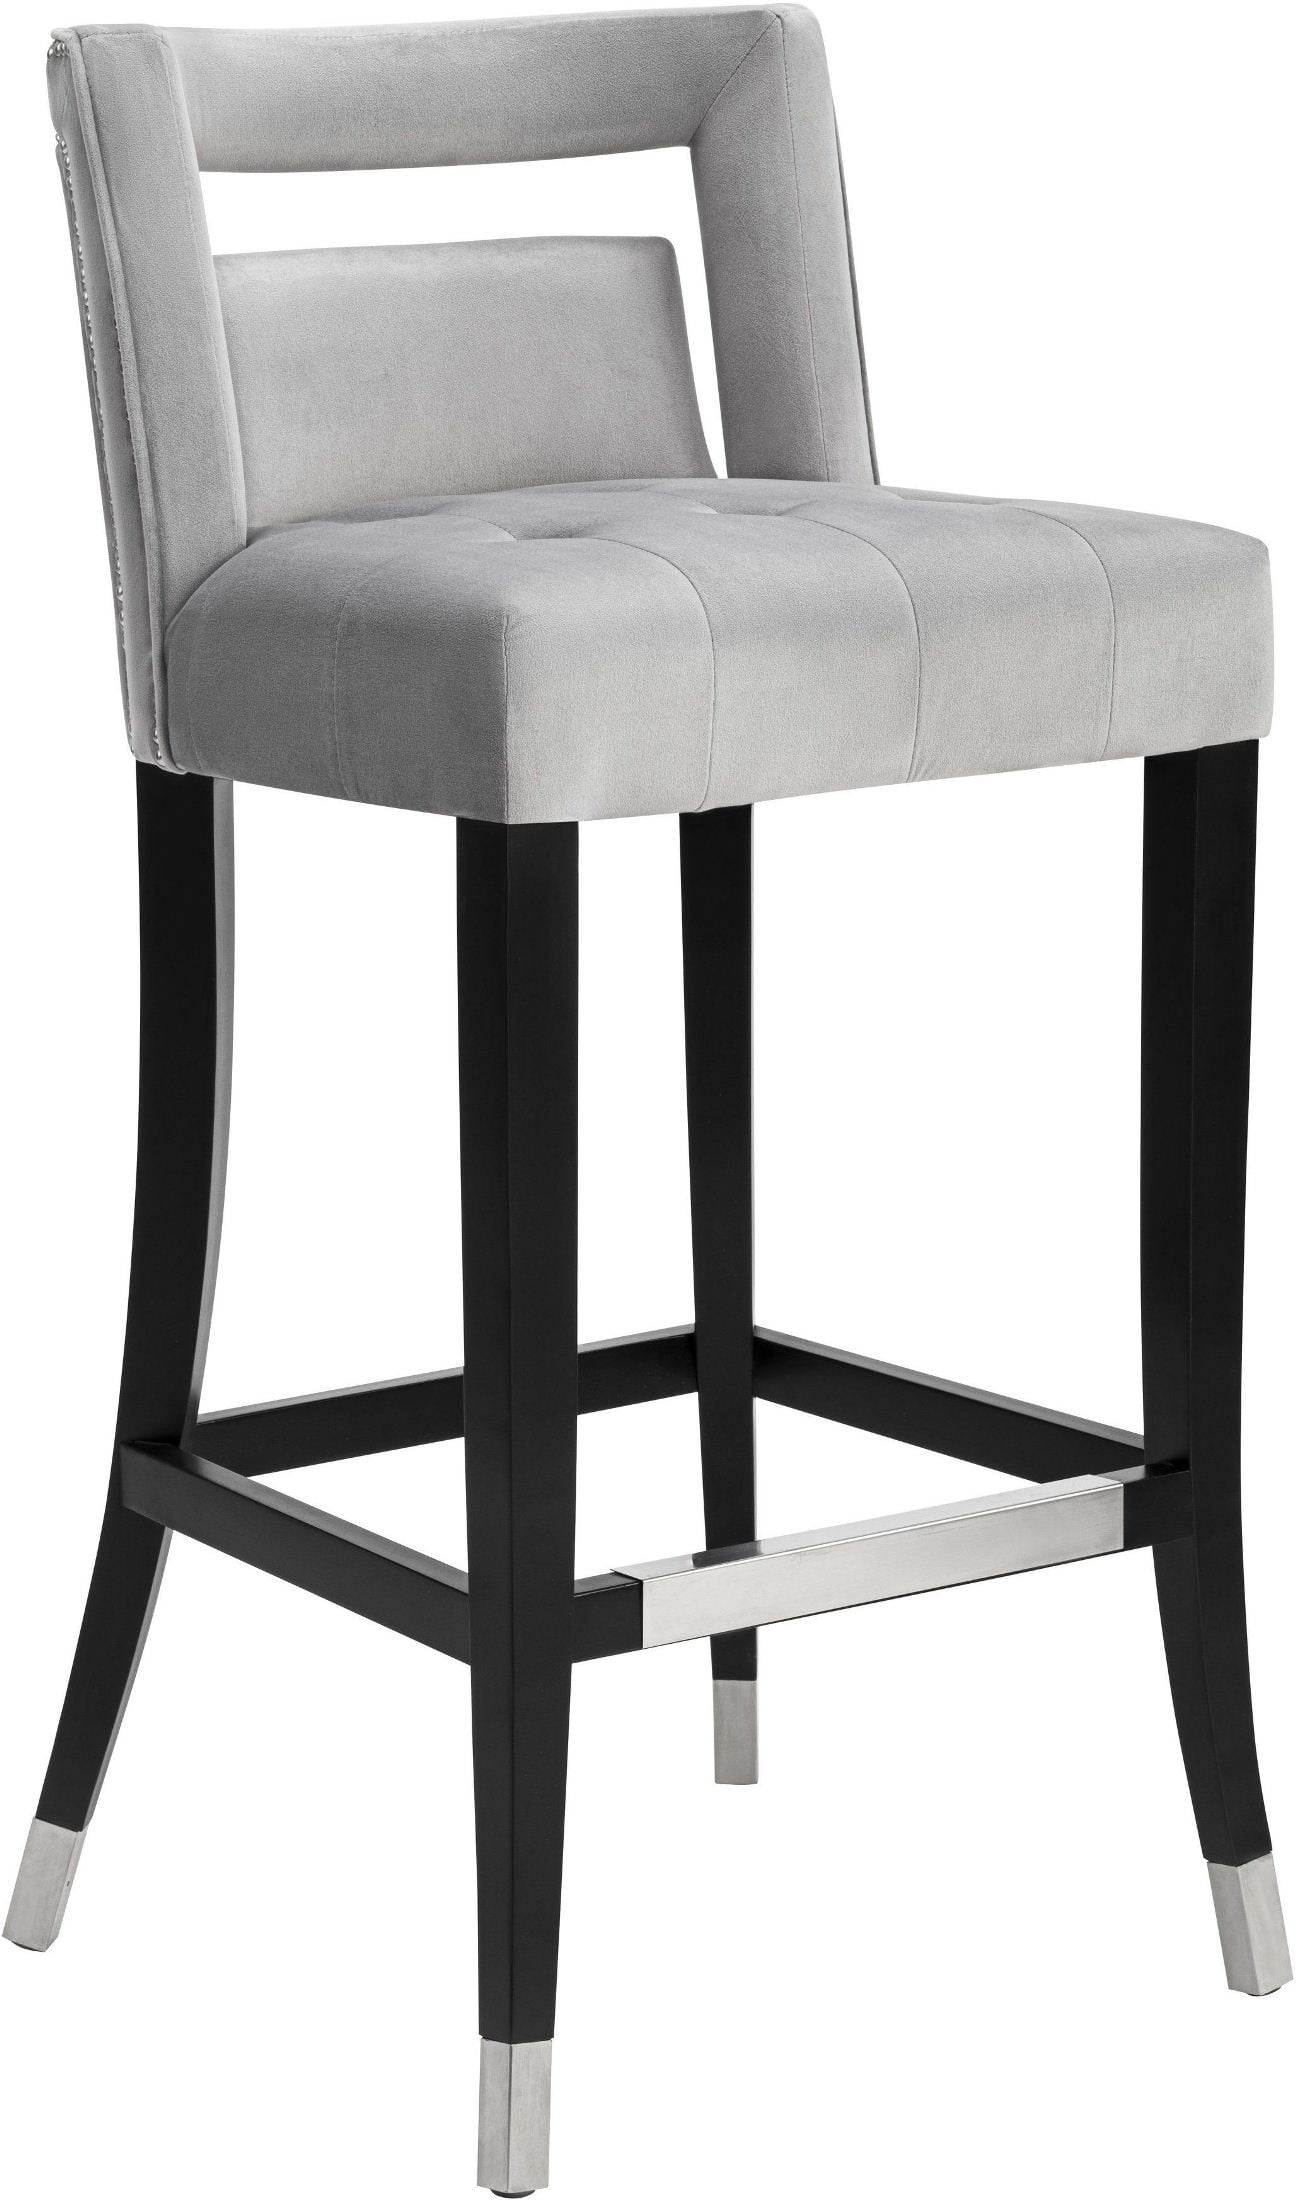 Hart Grey Velvet Bar Stool From Tov Coleman Furniture